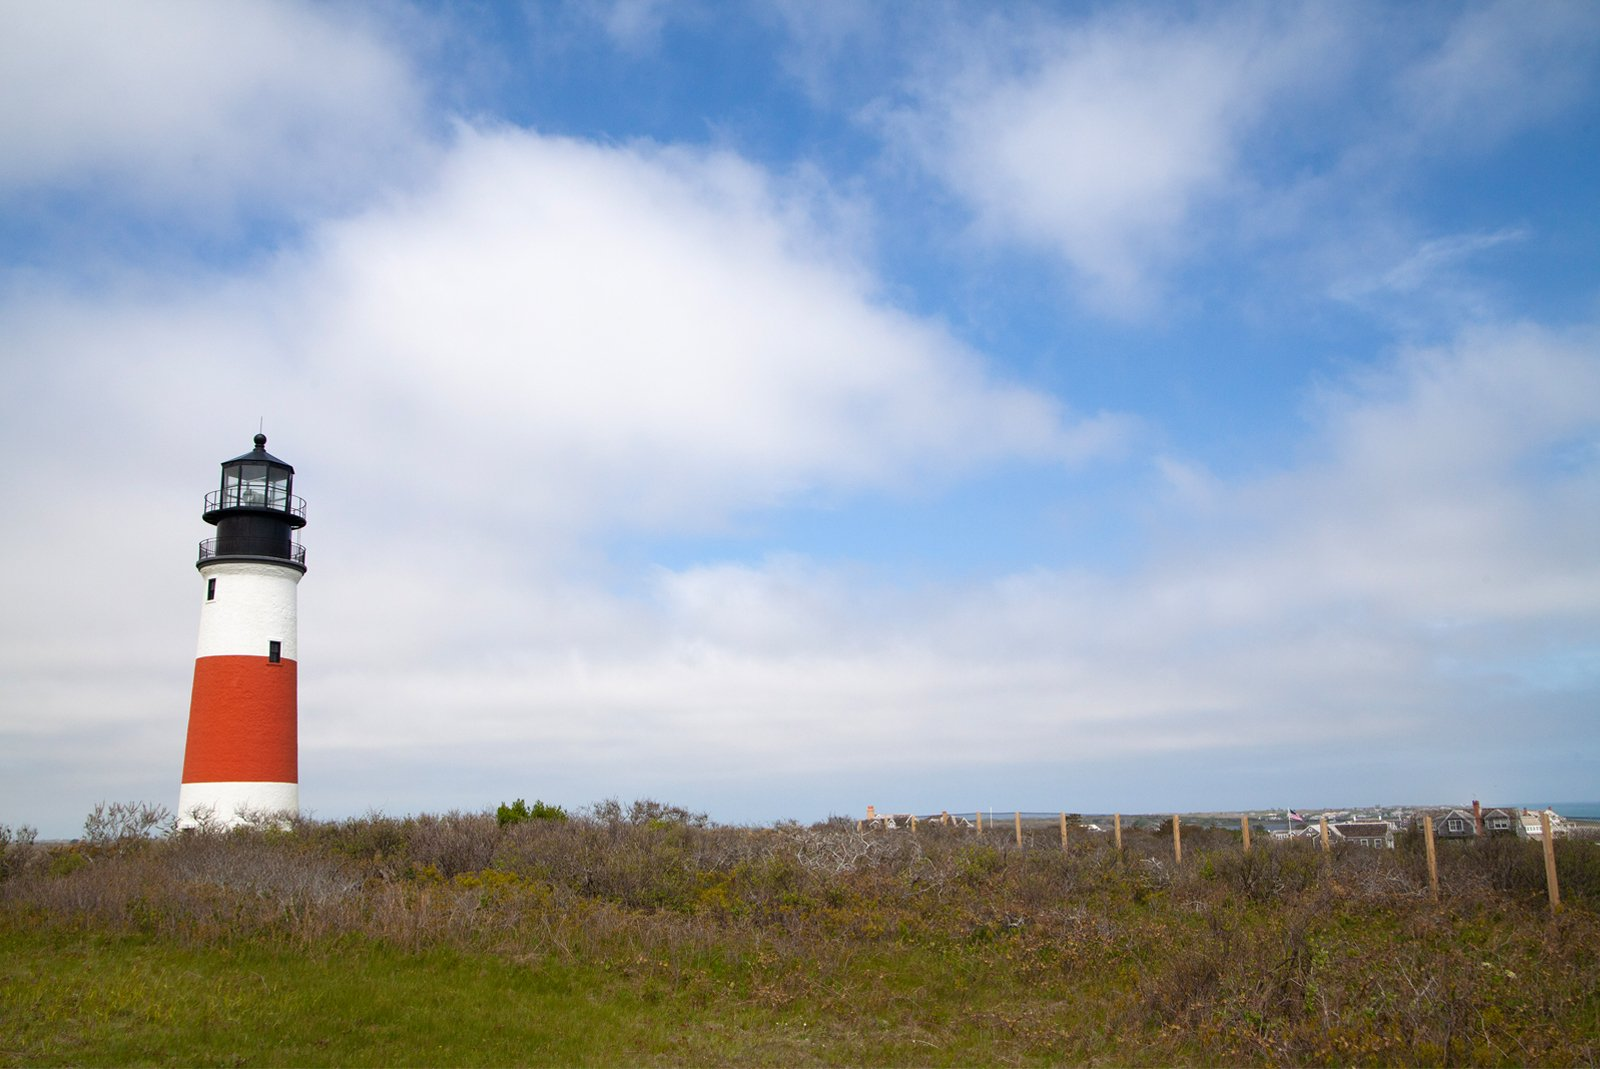 Sankaty Head lighthouse in Nantucket, Massachusetts